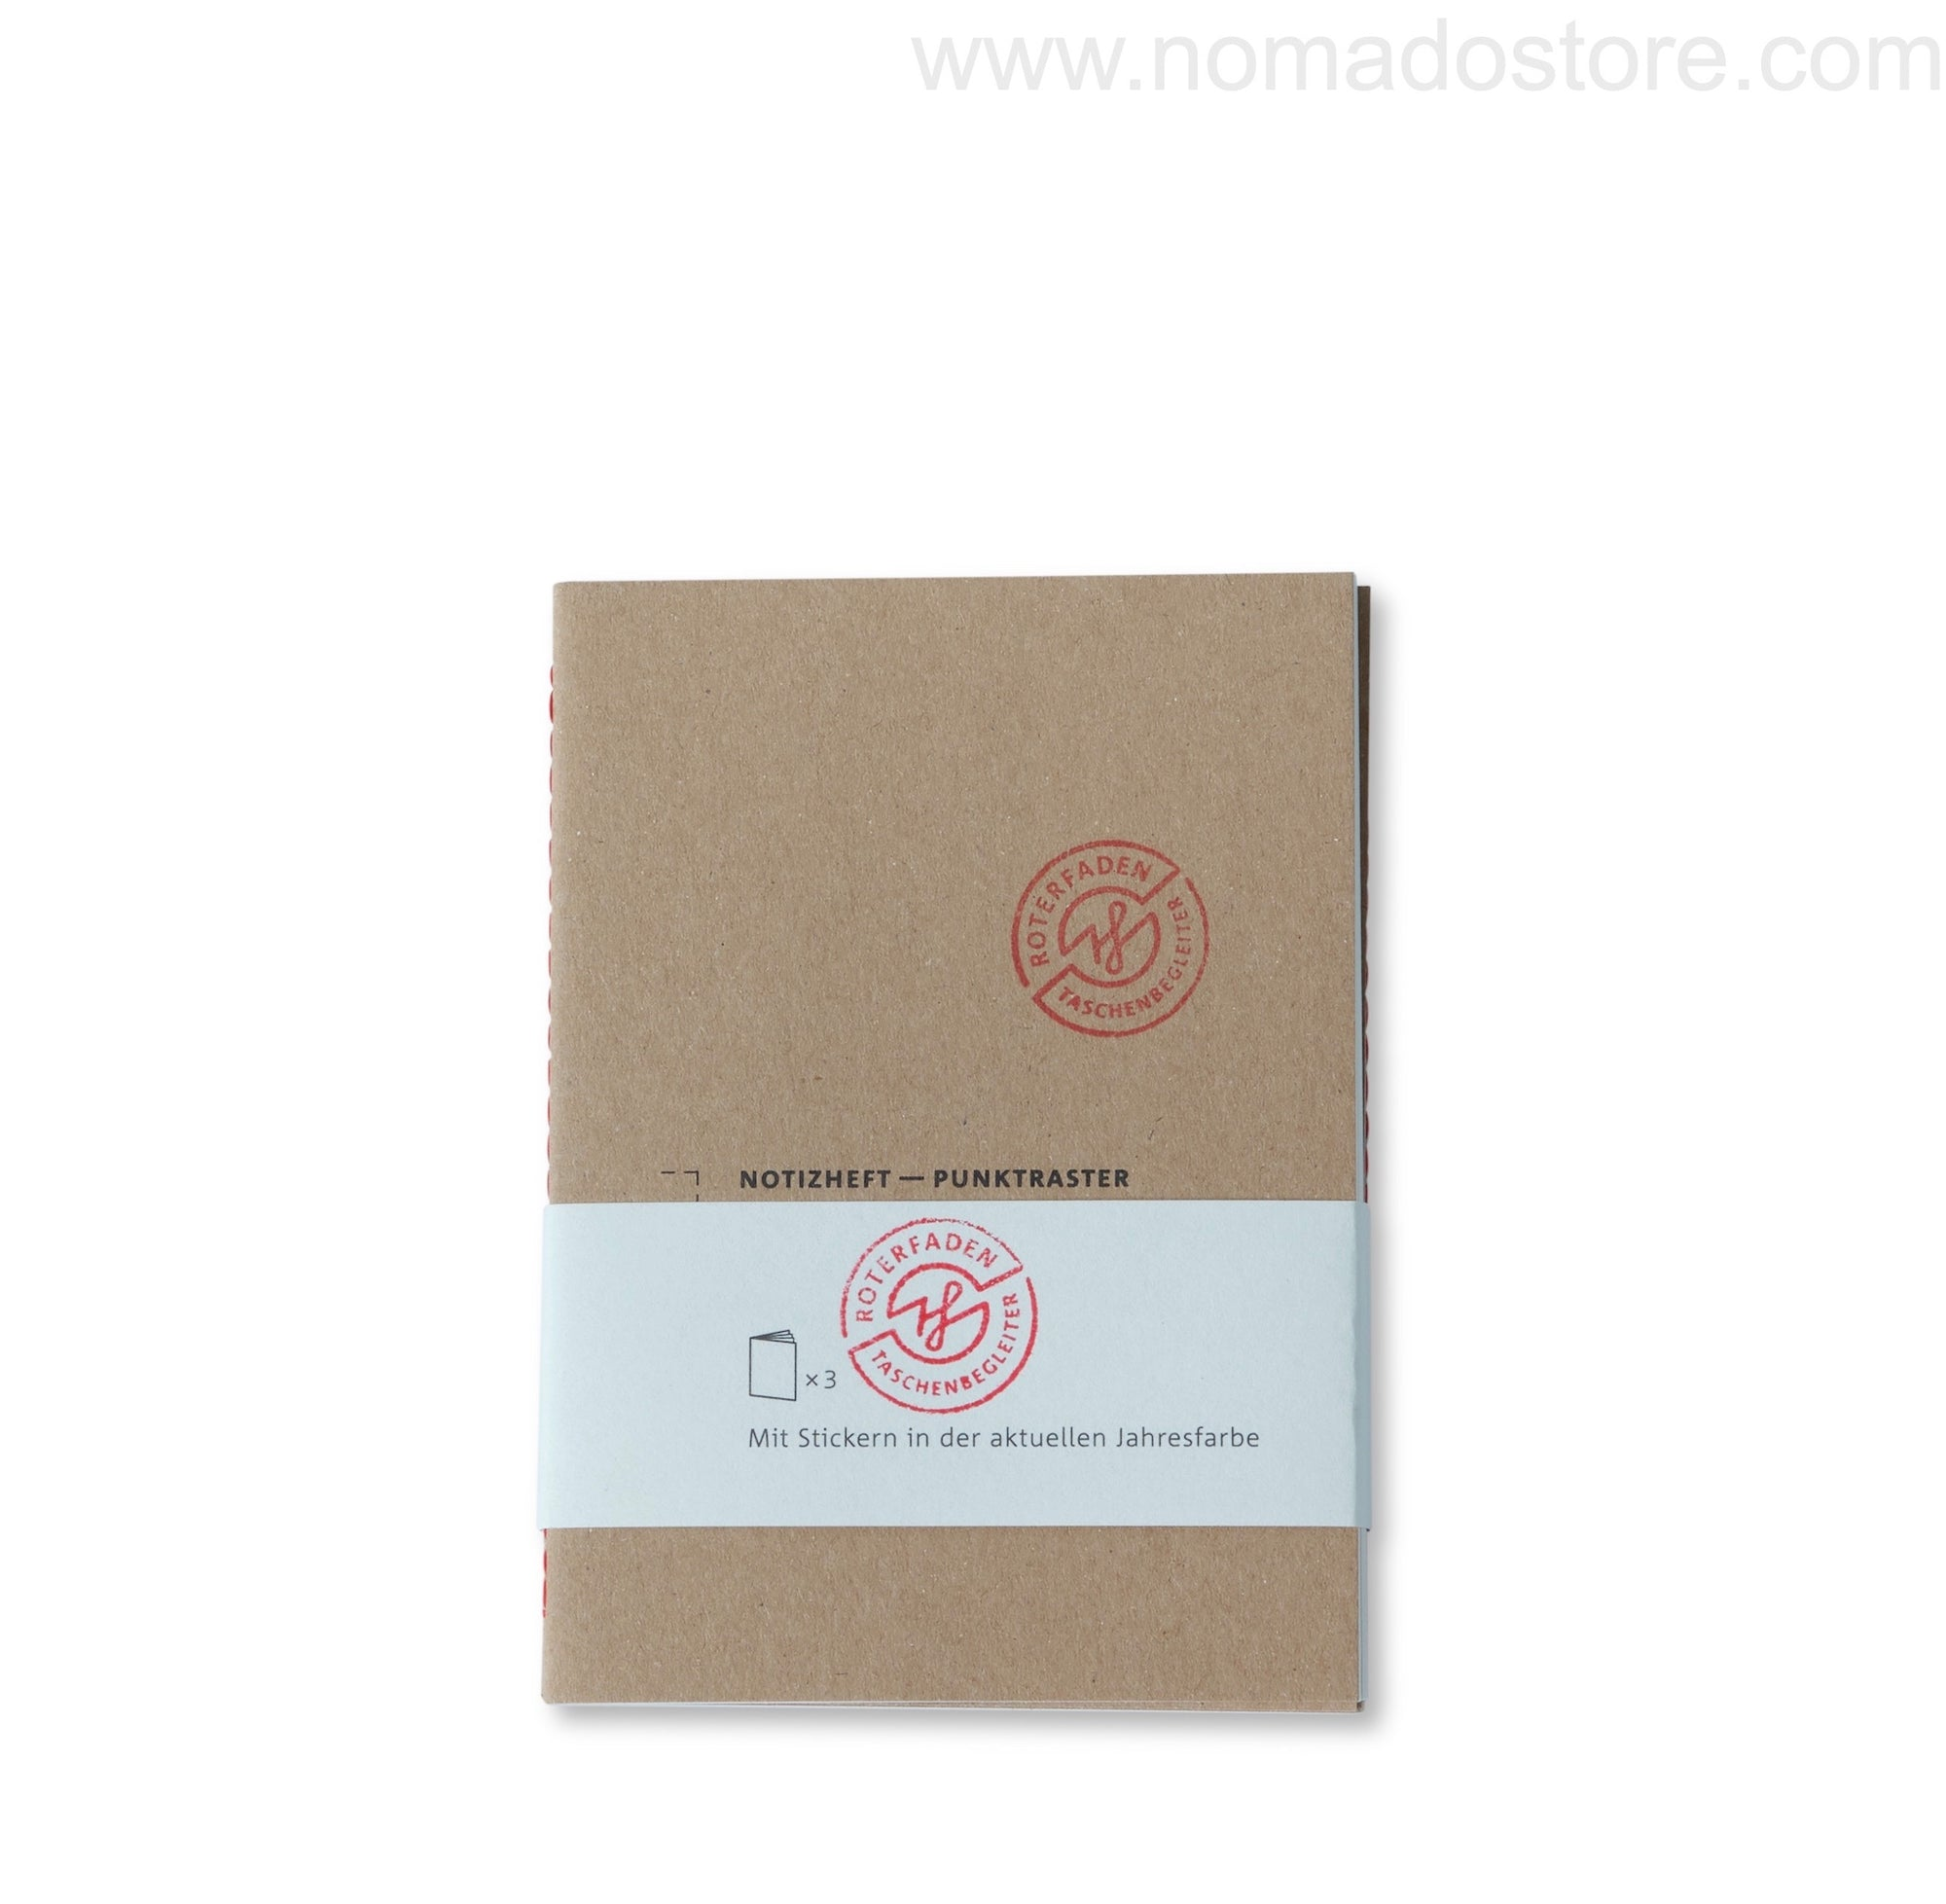 Roterfaden Smaller A6 Note Booklets -3-pack/dot grid (10x14cm)